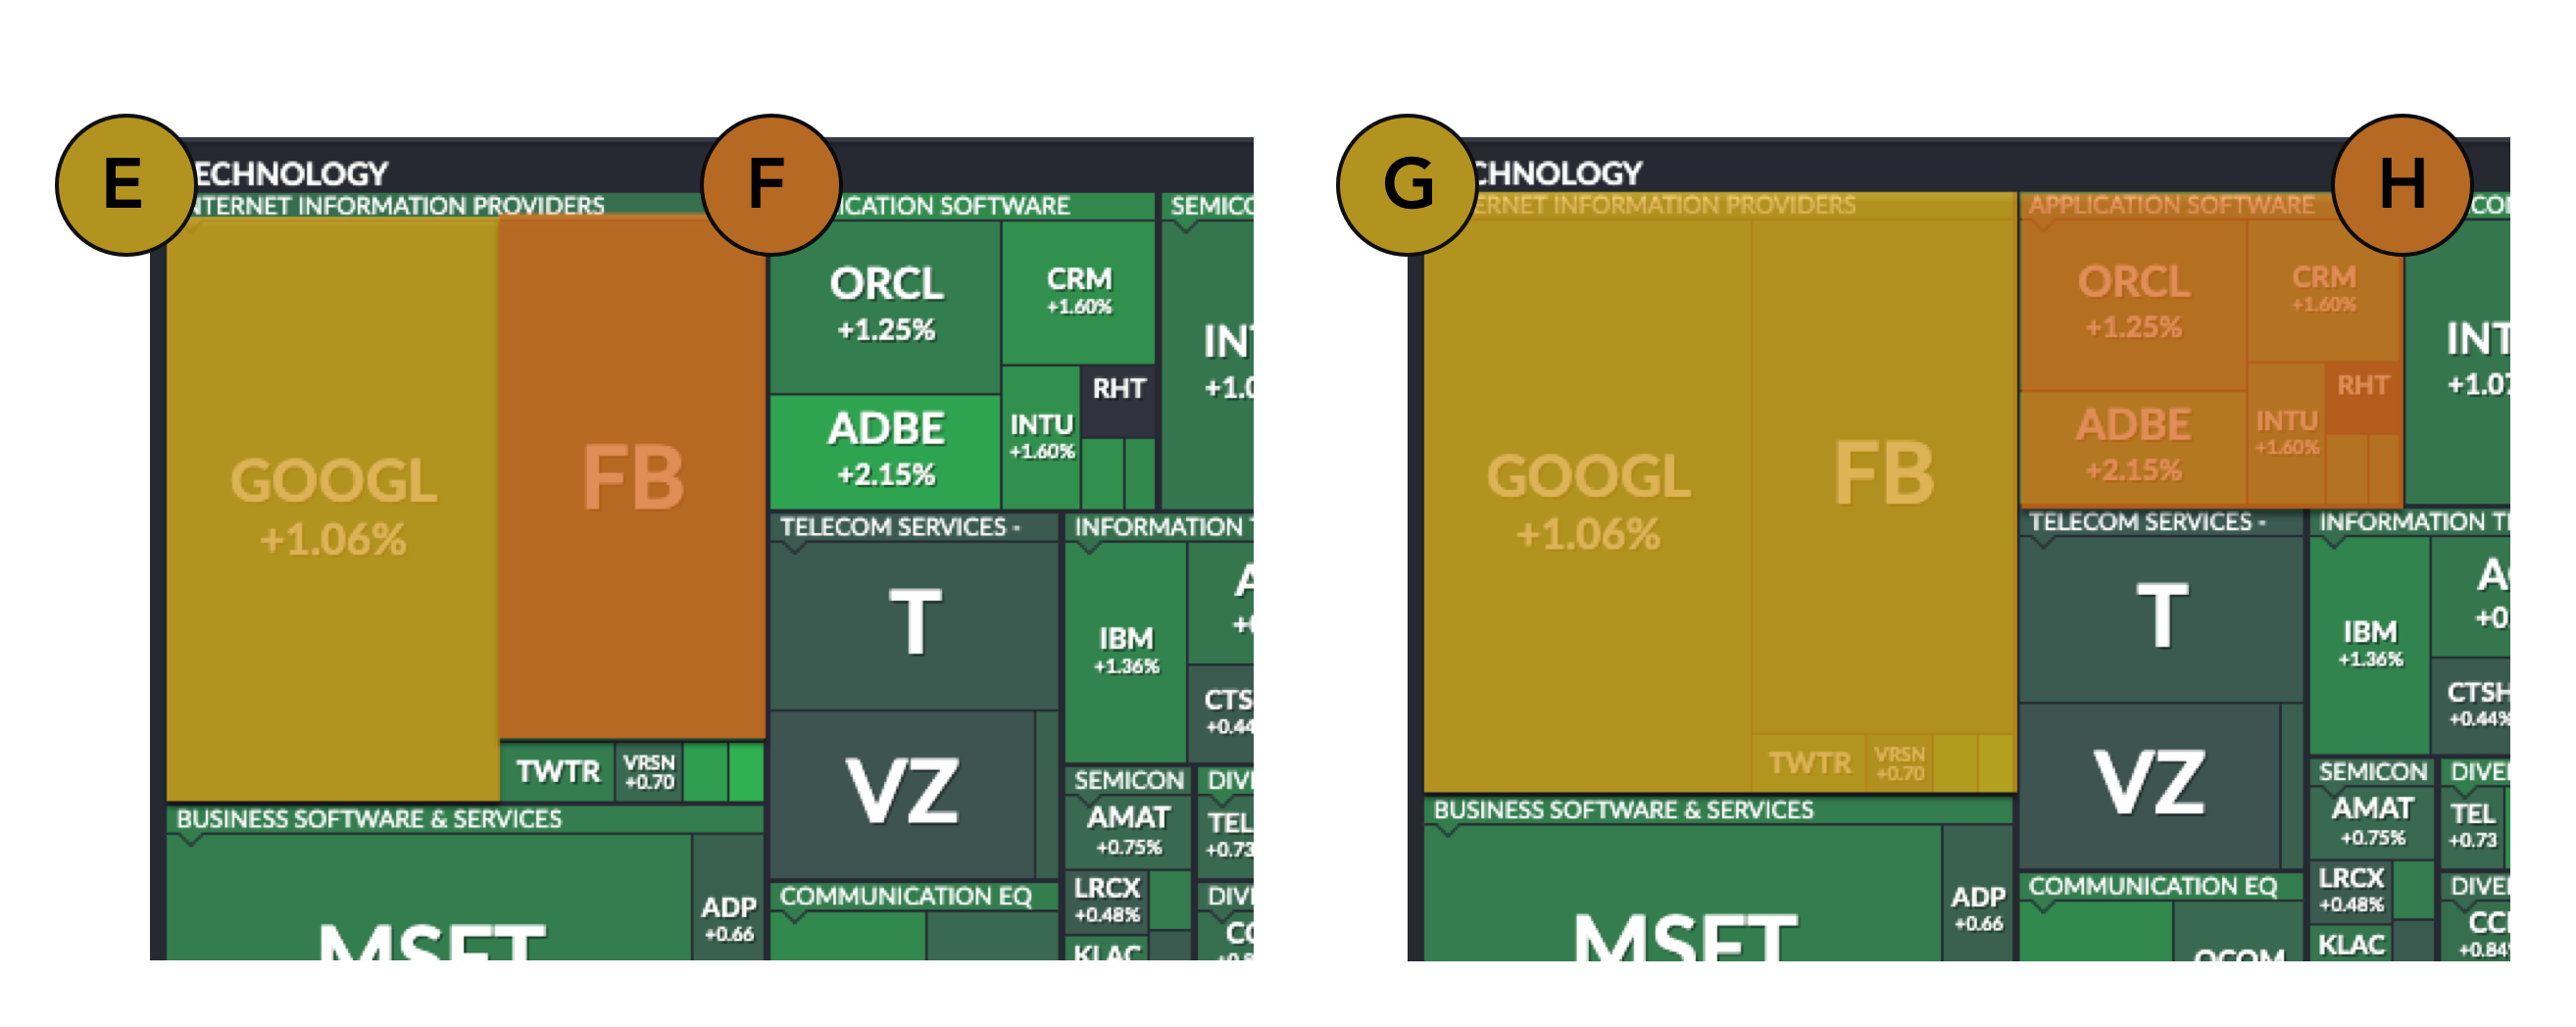 Two zoomed in images of a treemap, with the relative sizes of items shown, to compare their quantitative size